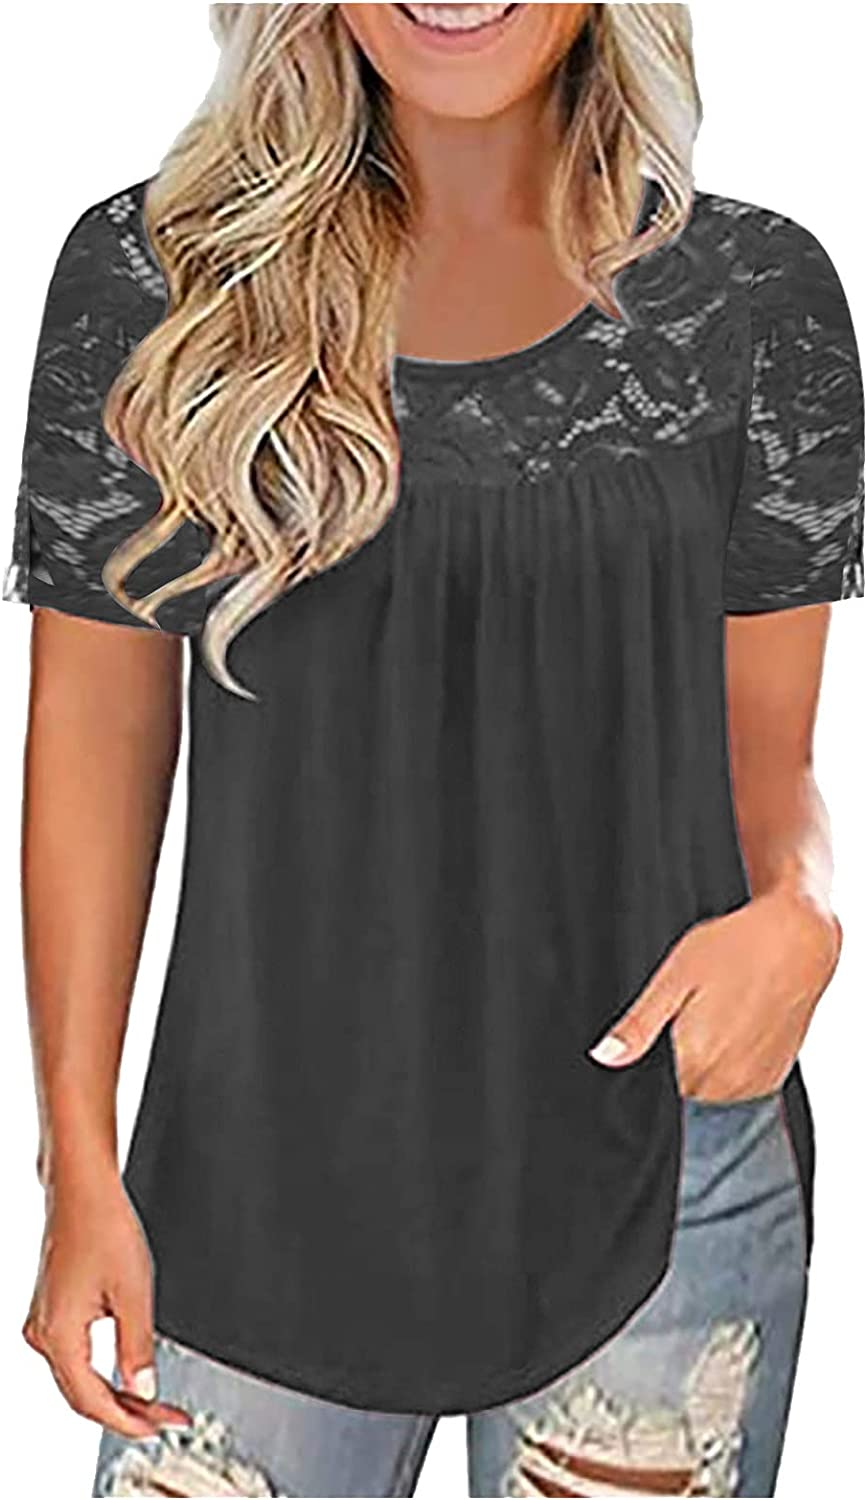 AODONG Short Sleeve Tops for Women, Women's Summer Tops Plus Size Lace Pleated Shirts Casual Loose Tees Tunic Blouses